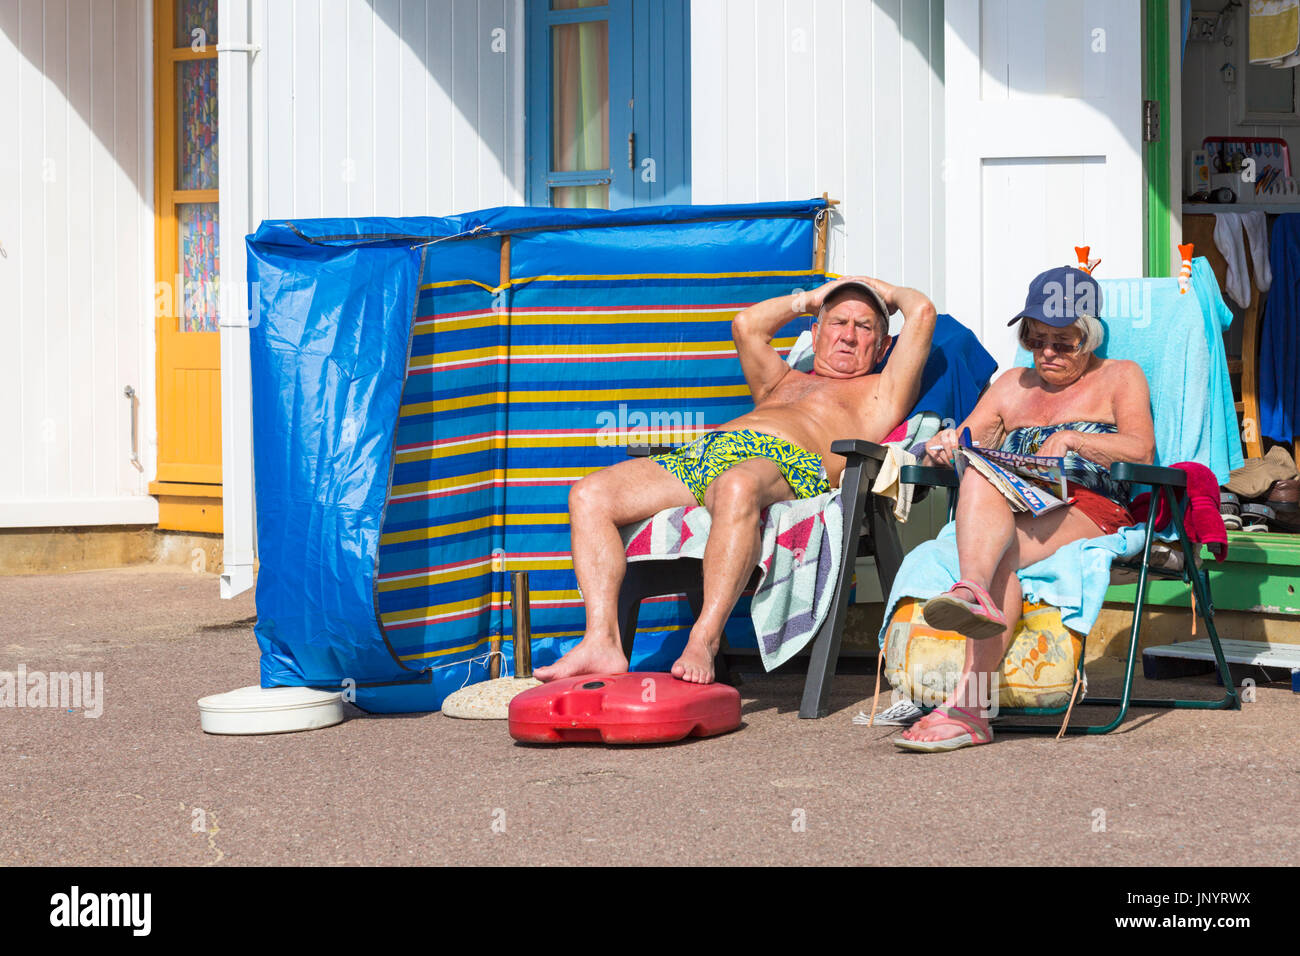 Bournemouth, Dorset, UK. 31st July, 2017. UK weather: after a weekend of mixed weather, a warm sunny start to the new week, as visitors head to the seaside to make the most of the sunshine. Mature couple relaxing in the sun at beach hut. Credit: Carolyn Jenkins/Alamy Live News - Stock Image